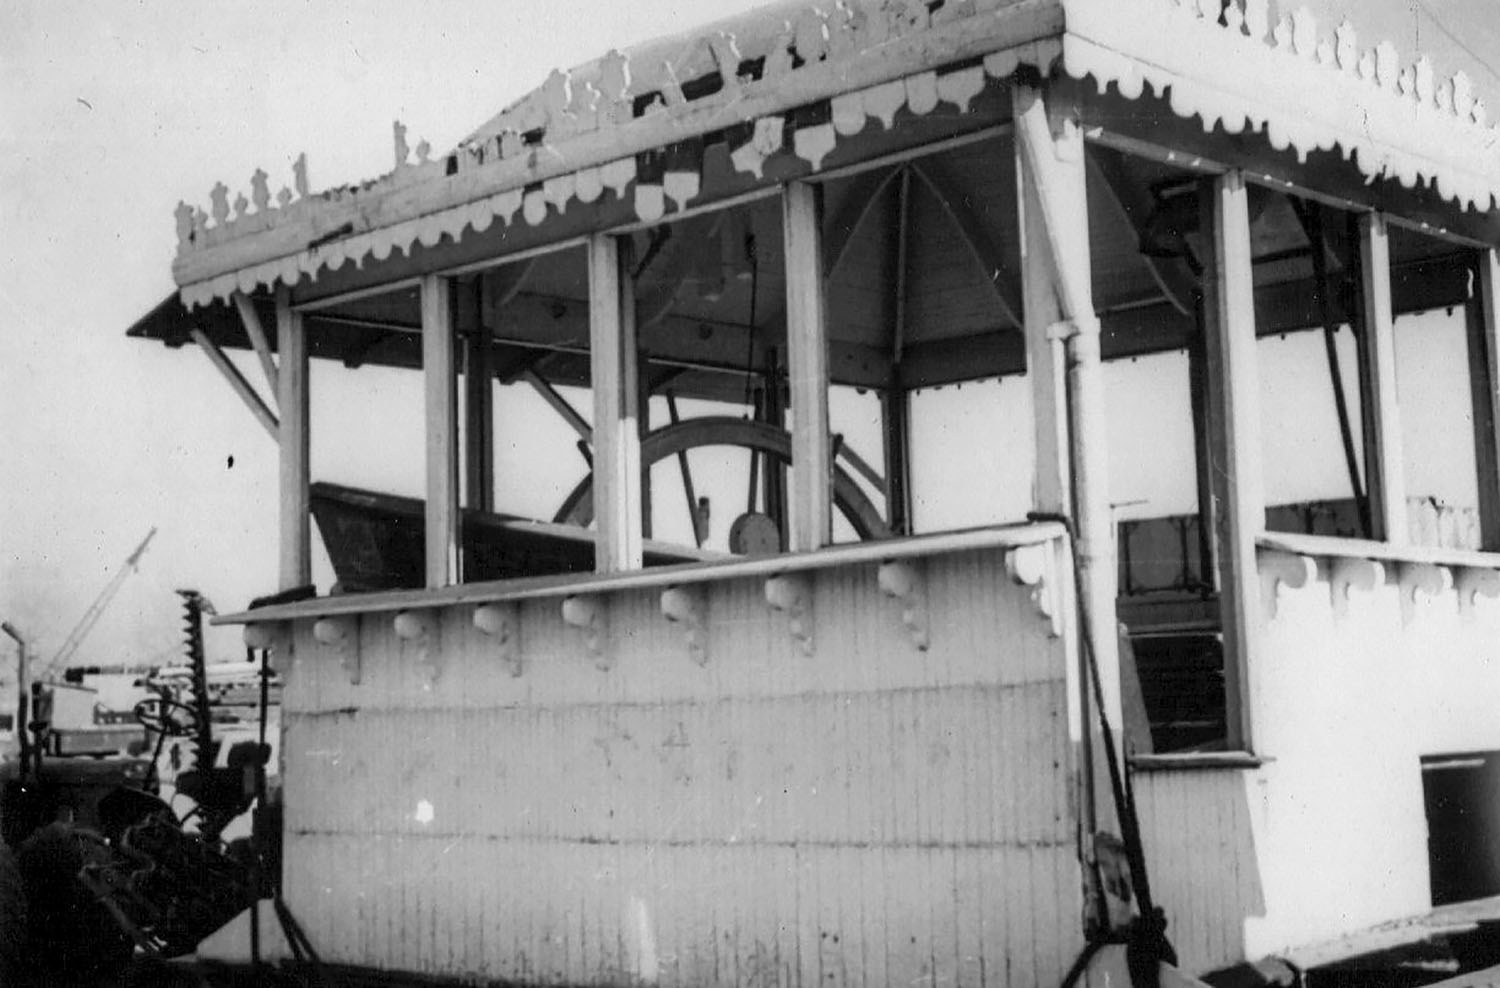 Pilothouse of the Golden Eagle shortly after being salvaged from the wreck in 1947. (Photo from Keith Norrington collection)